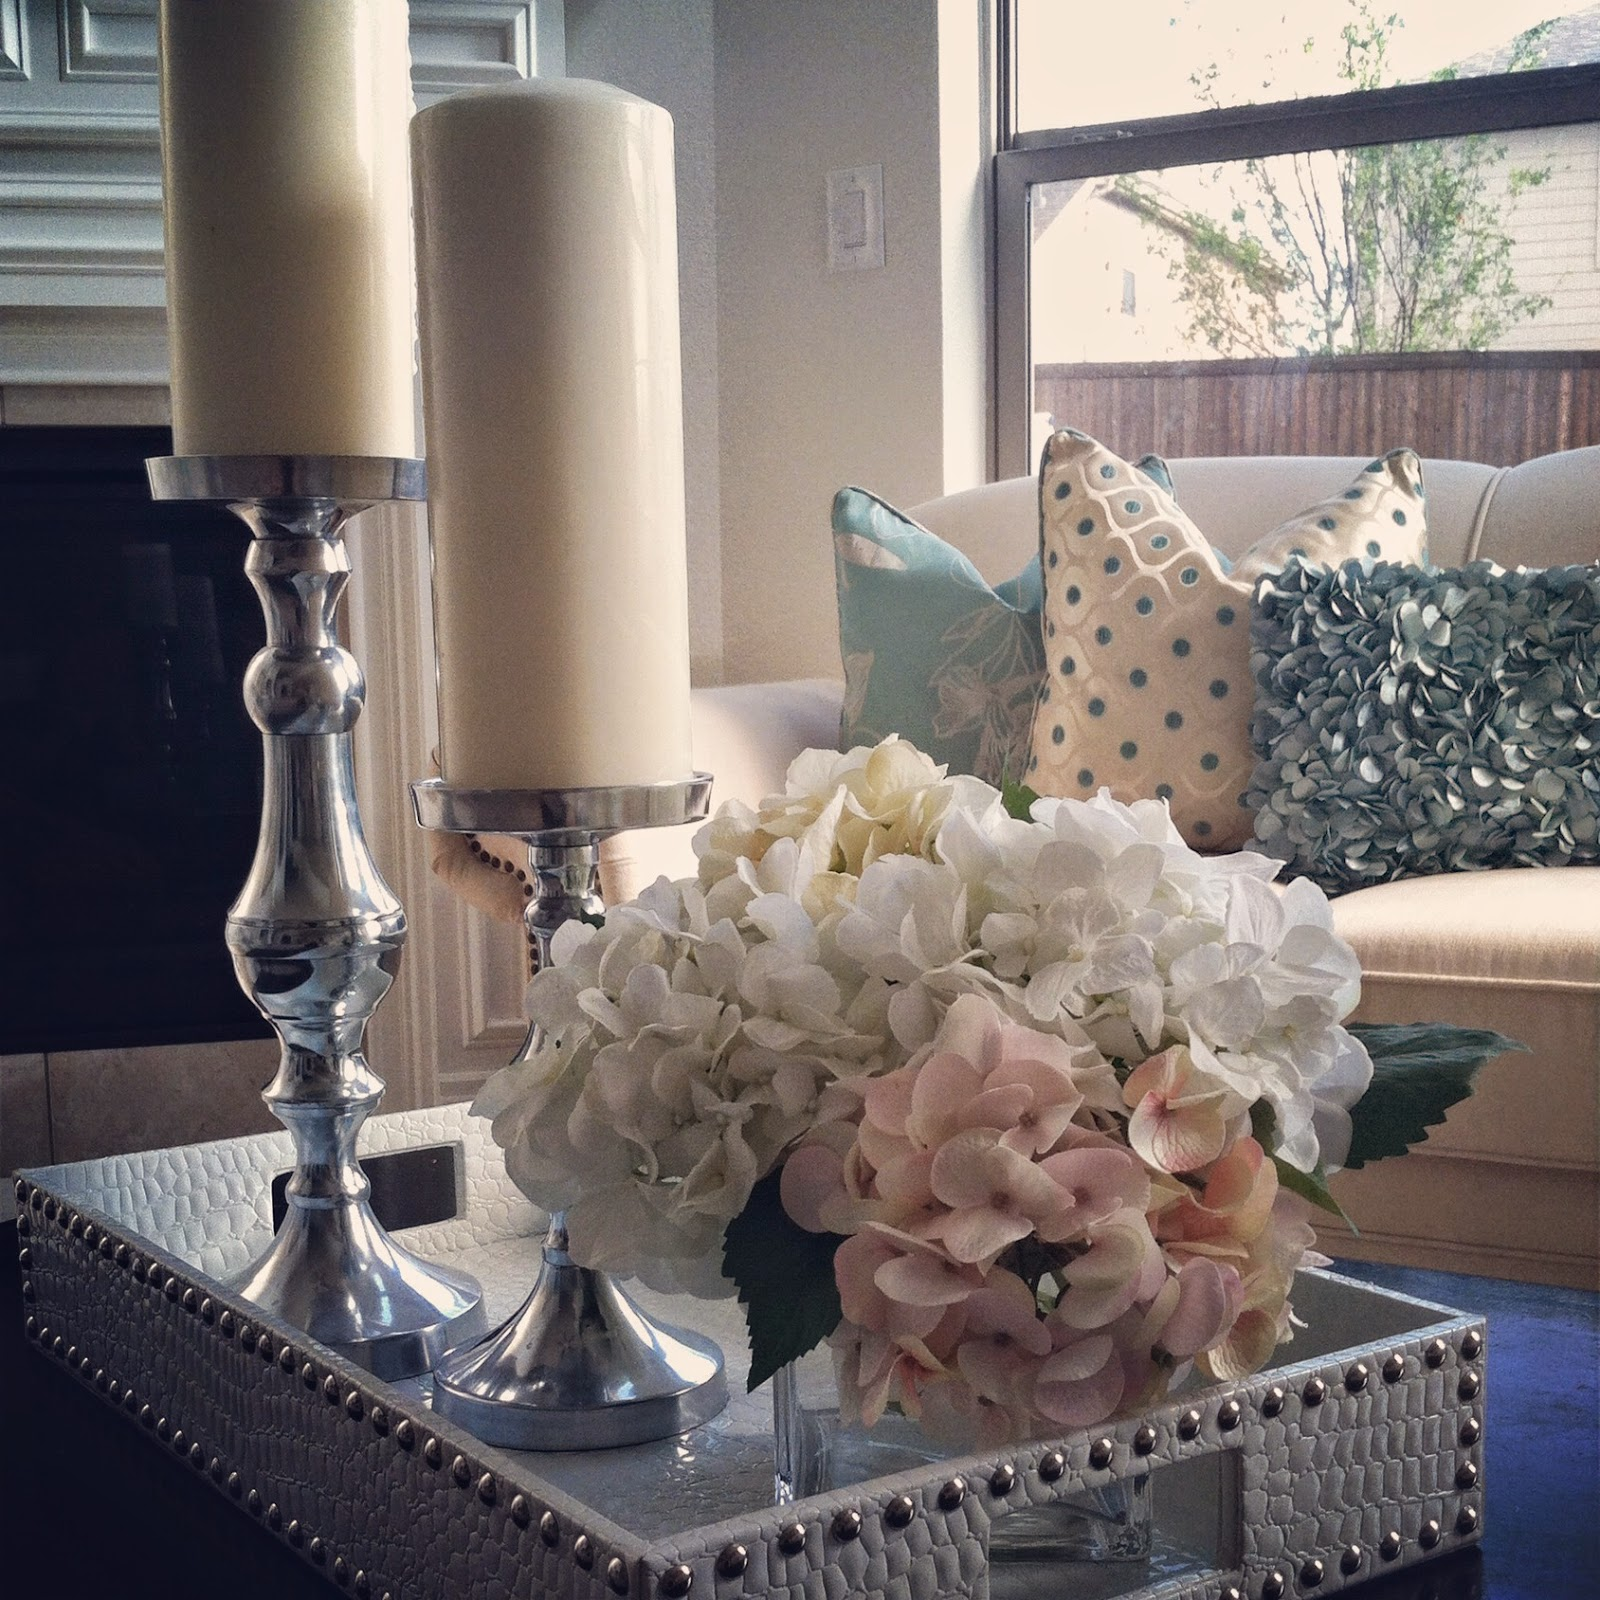 beautiful tiny accent table with flowers hotel odaurze designs flower and candle decorative tables living room cordless bedside lights hobby lobby console west elm pillows white